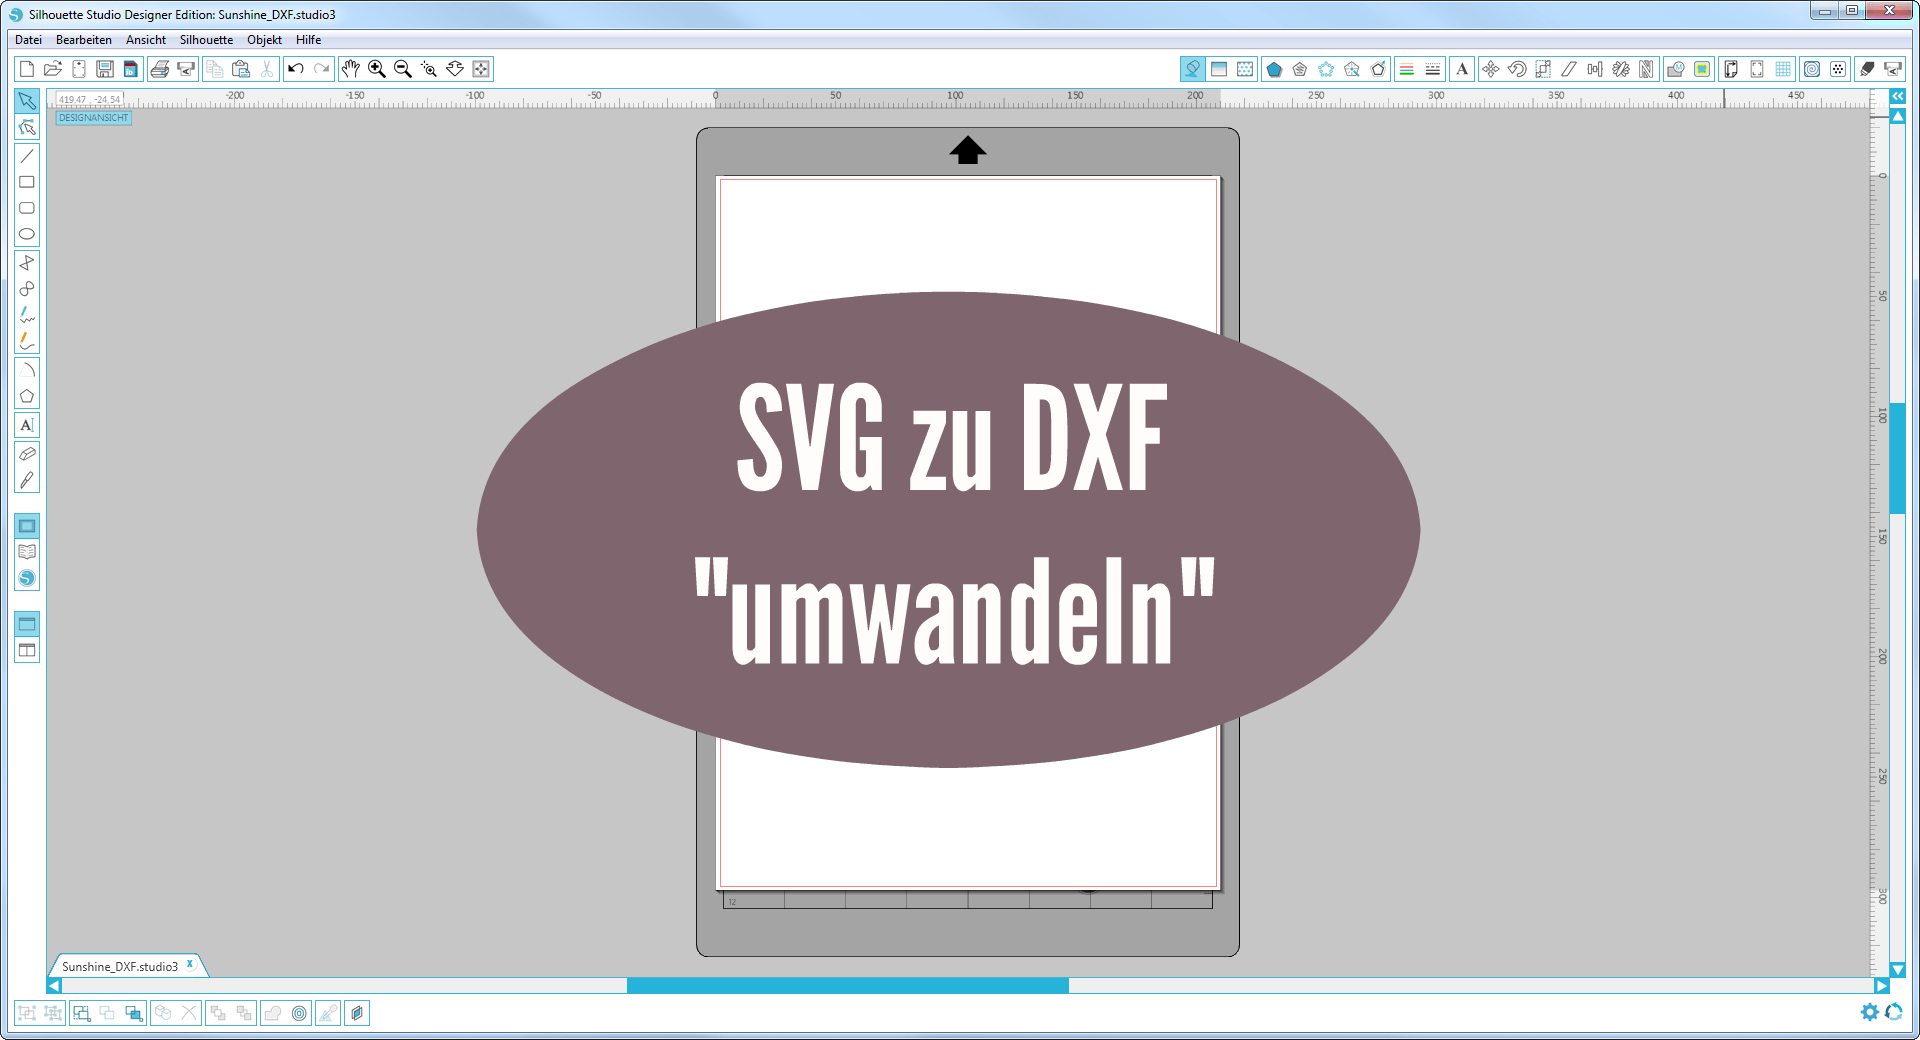 plotter anleitung svg in eine dxf datei f r die silhouette software umwandeln blog ohne namen. Black Bedroom Furniture Sets. Home Design Ideas